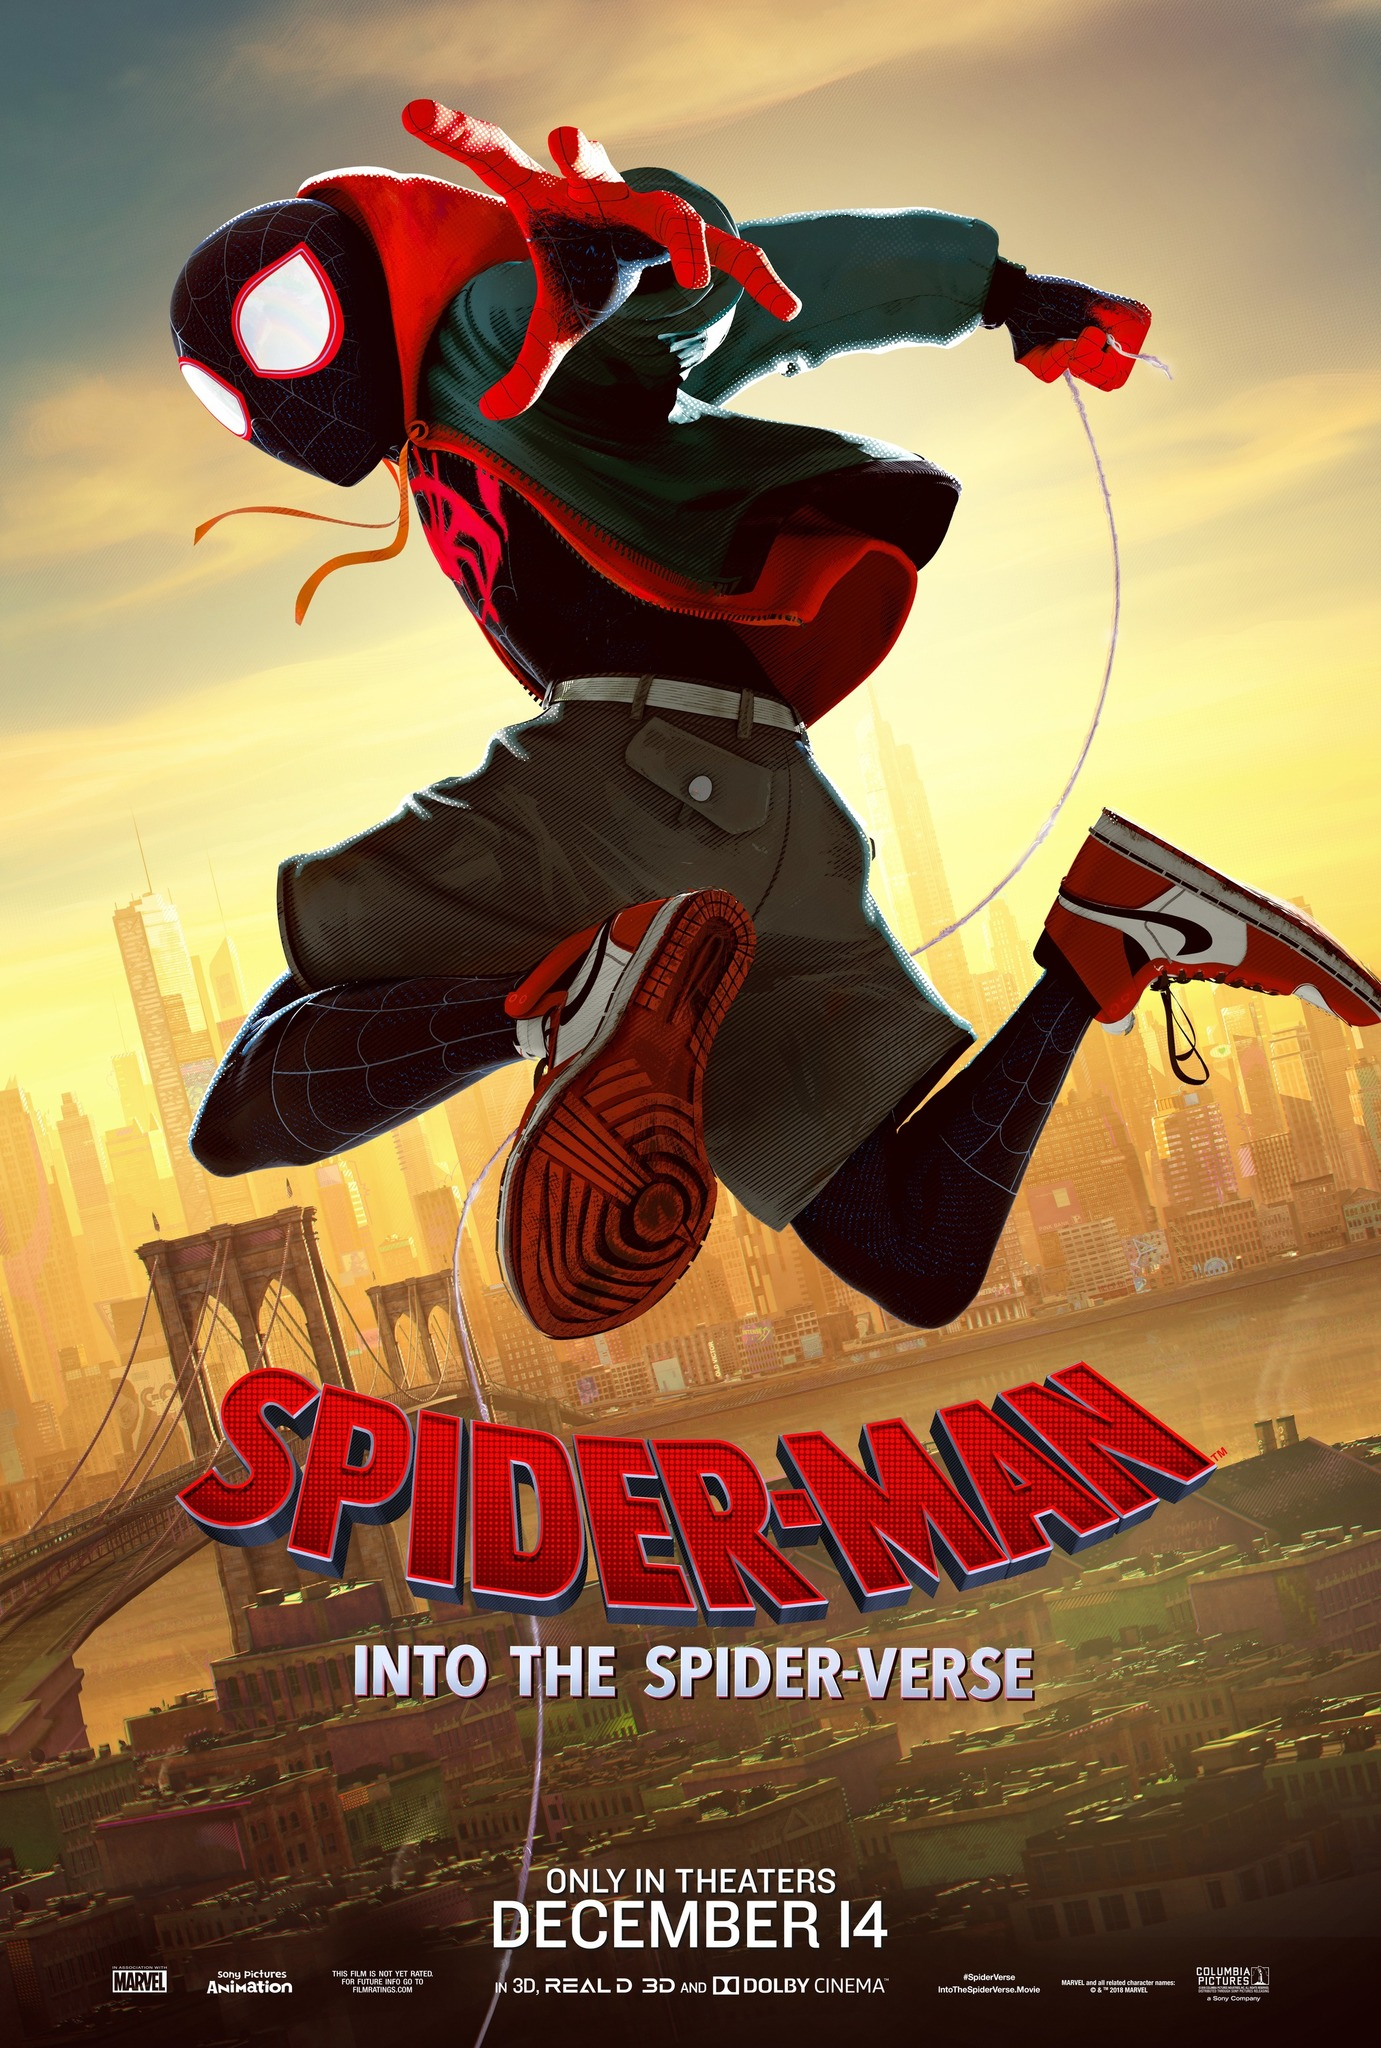 Spider-Man: Into the Spider-Verse movie poster.